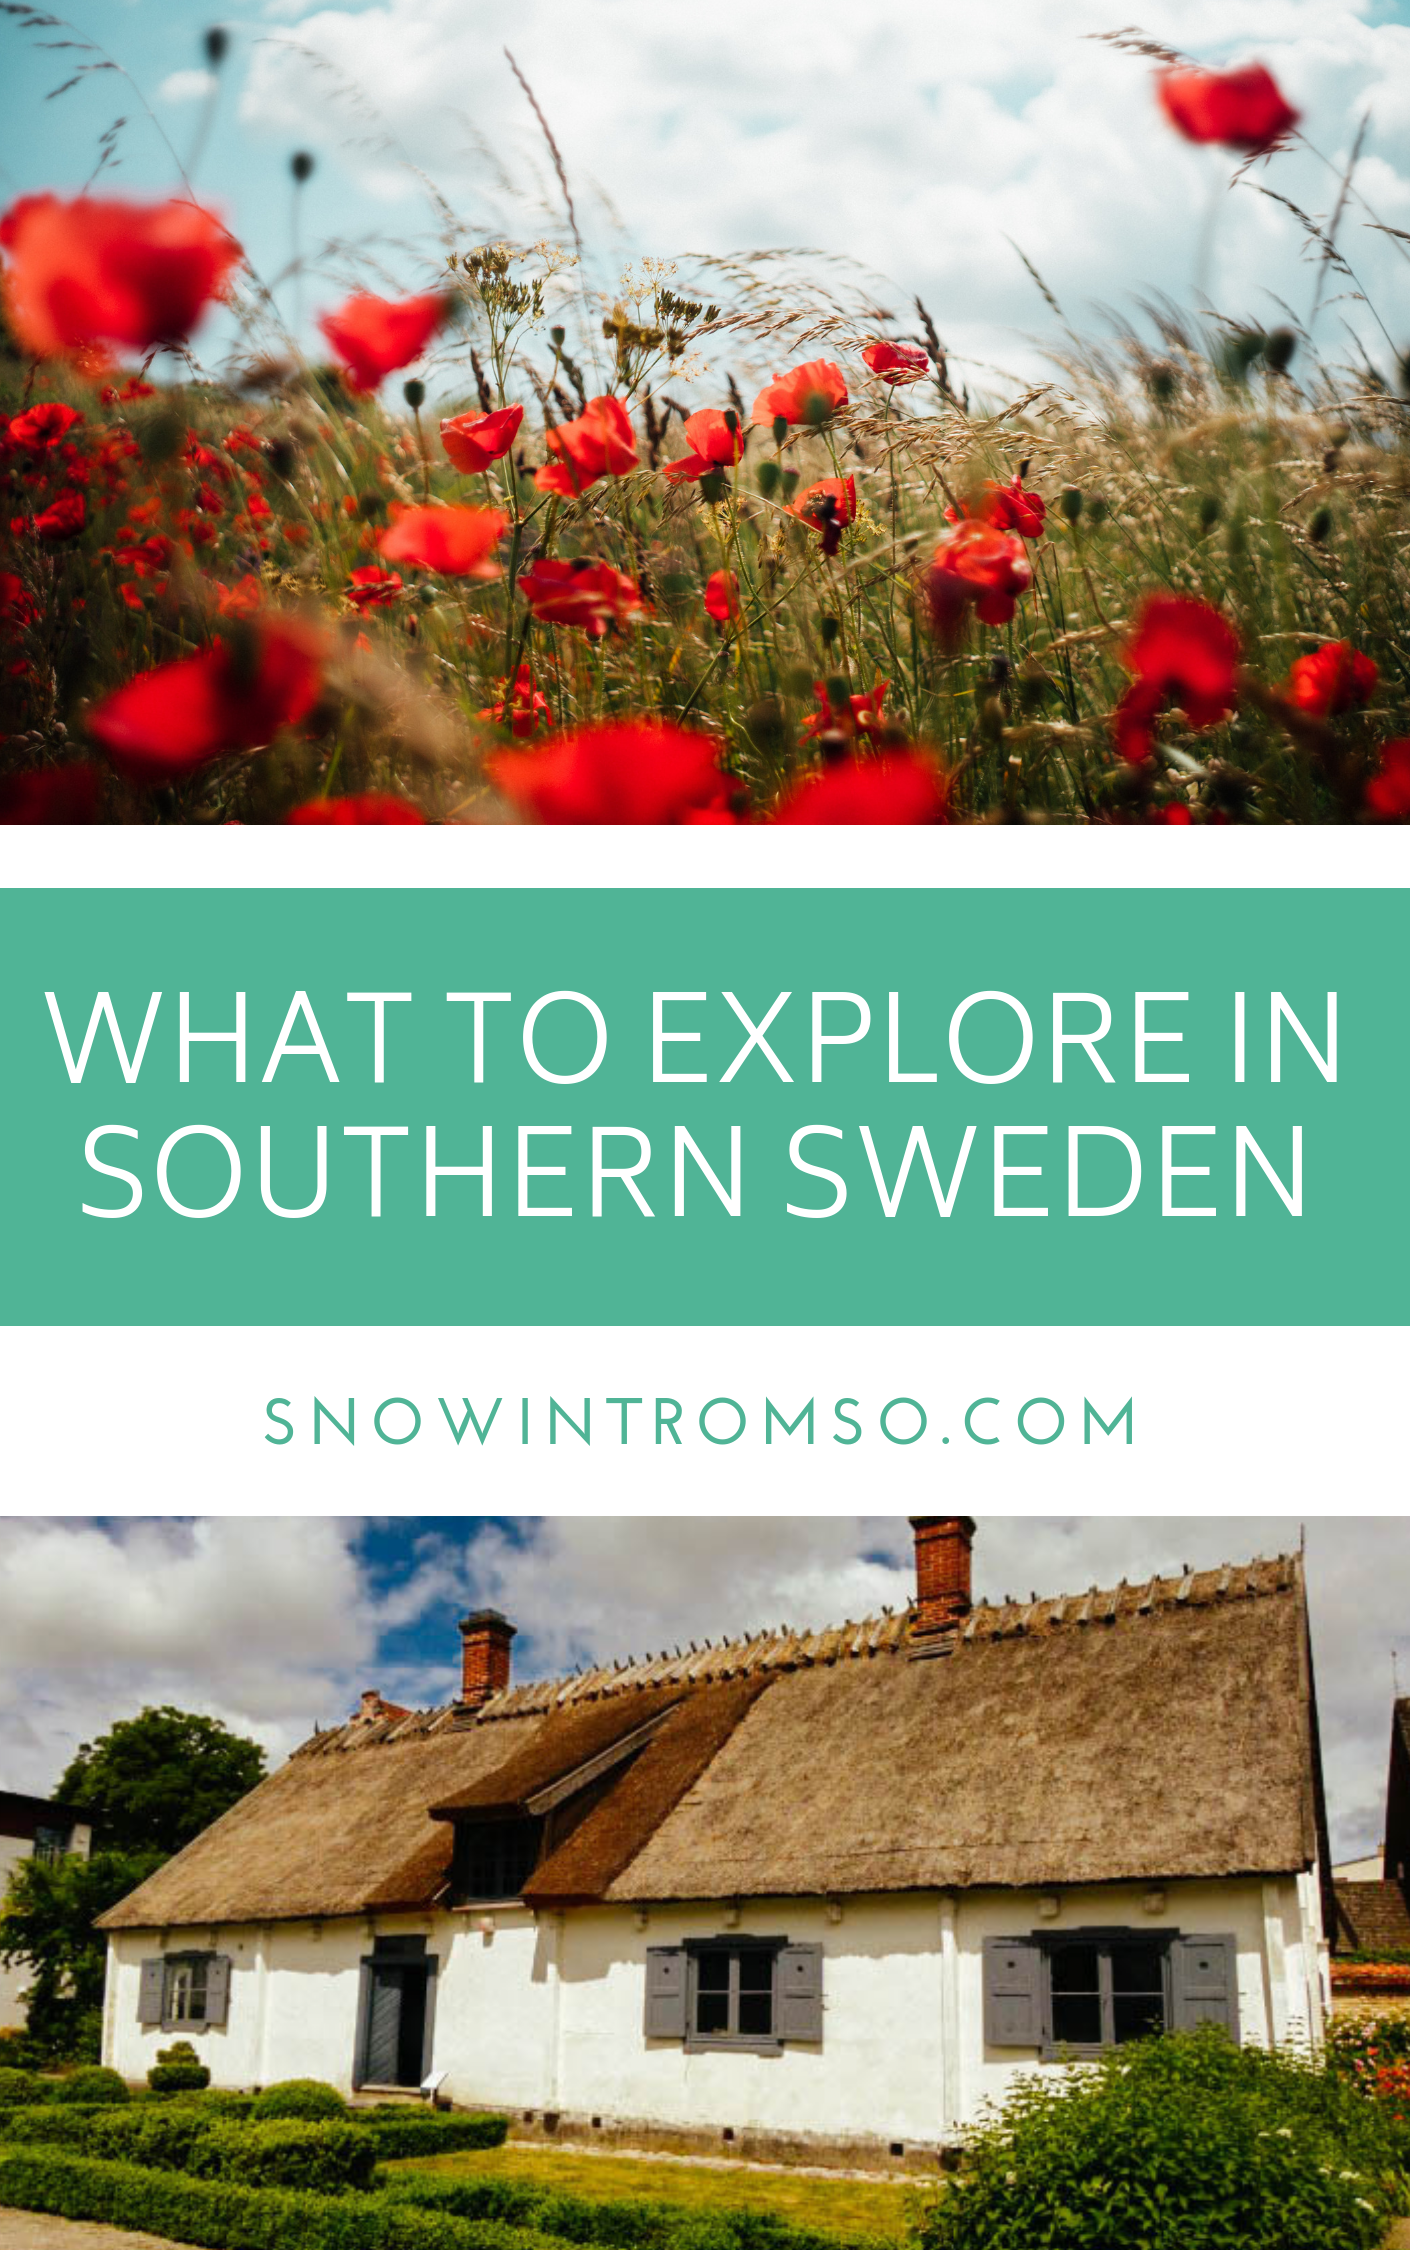 Thinking about a summer visit to Southern Sweden? Here's what you should do and explore once you're there!